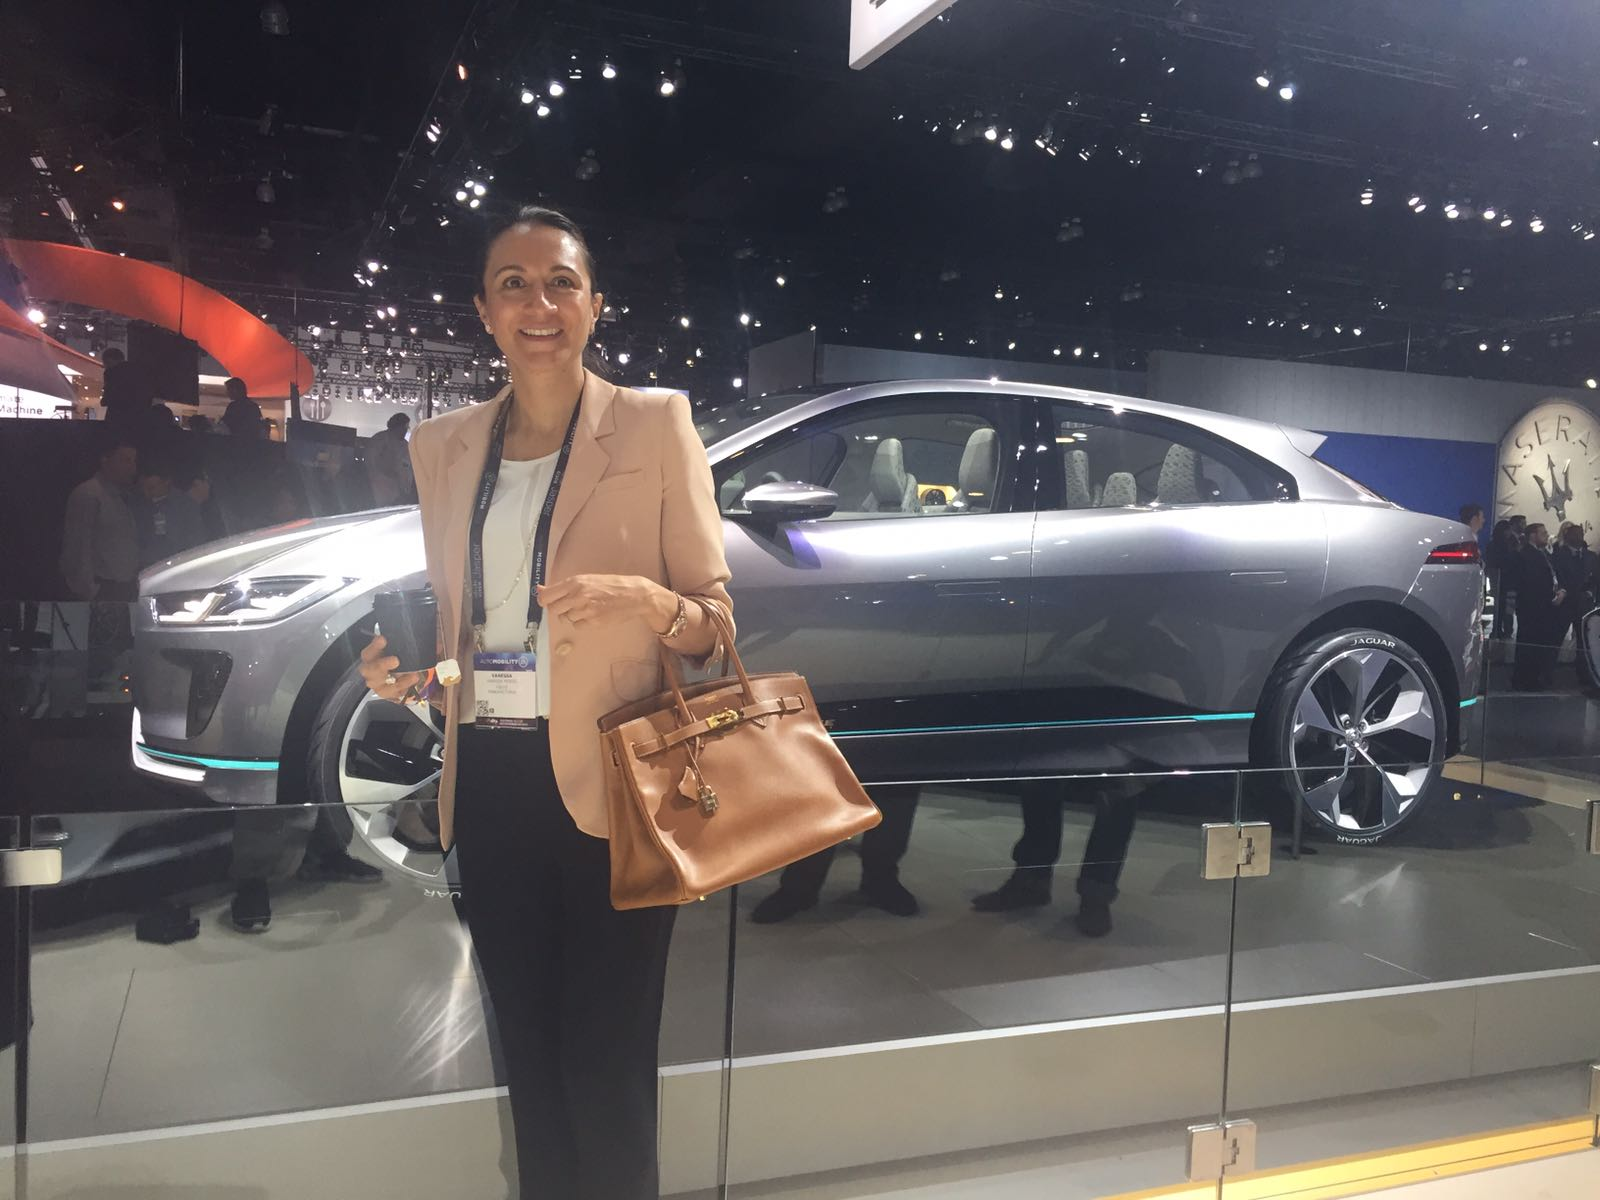 LIASE Group Managing Director Asia Vanessa Moriel stands in front of the Jaguar I-PACE Concept which made its North American debut at the LA Auto Show in 2016. The I-PACE is Jaguar's first fully electric car.